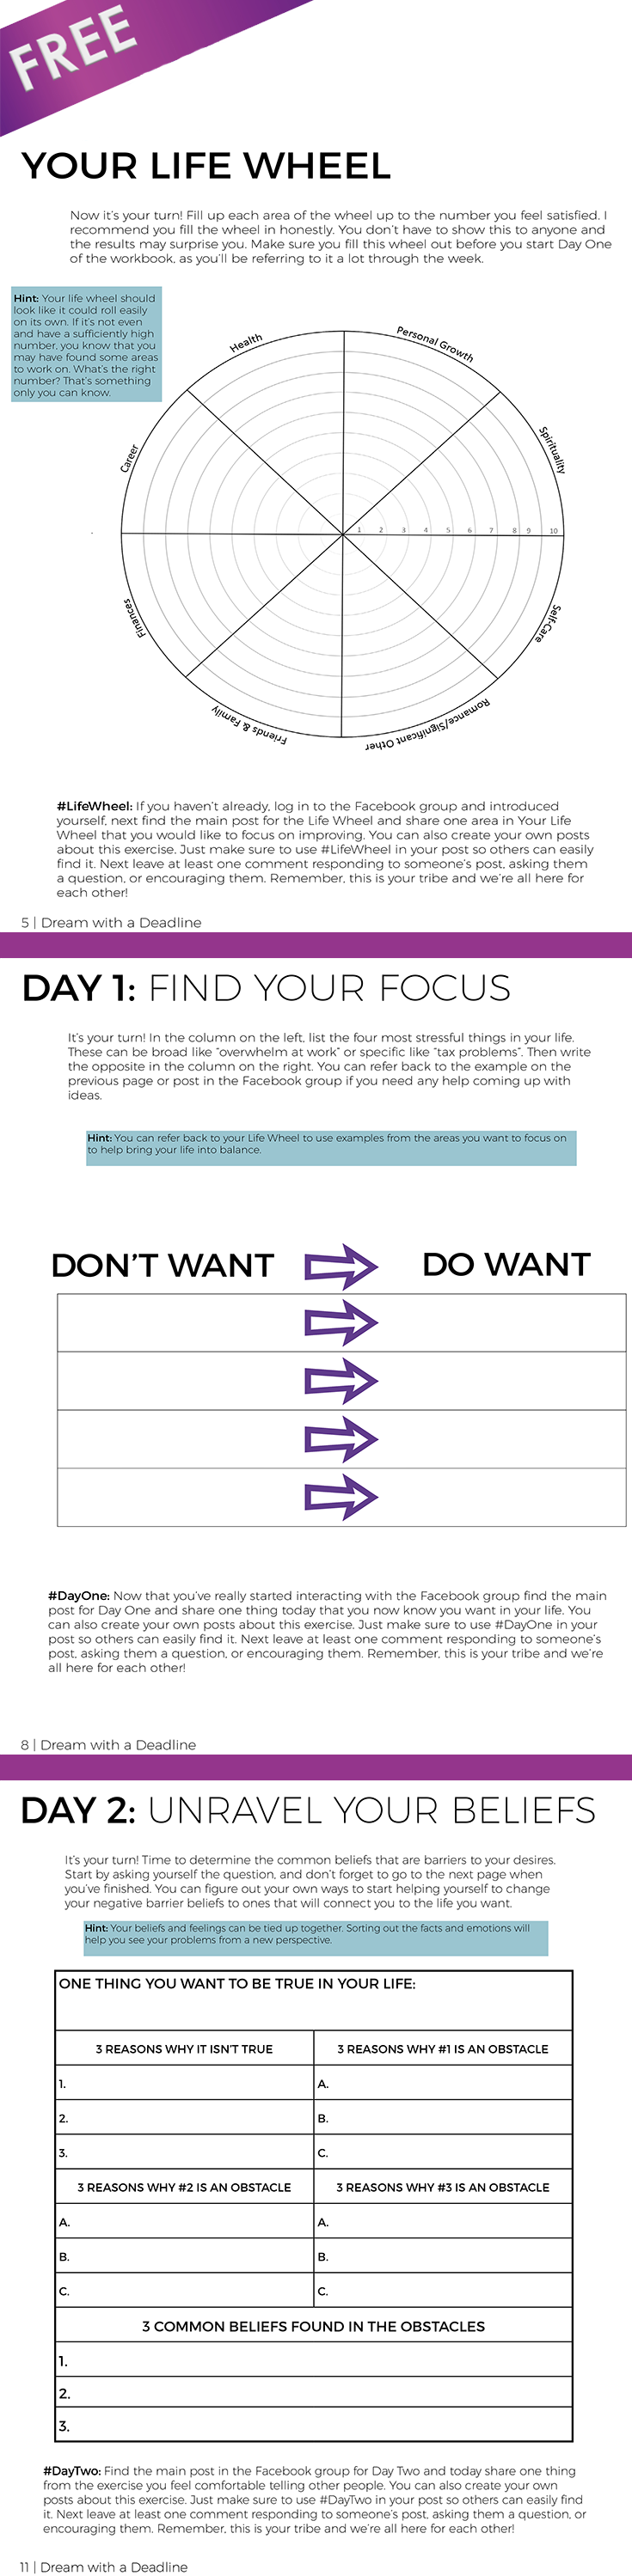 FREE Personal Development Goal Setting Workbook - 26+ pages